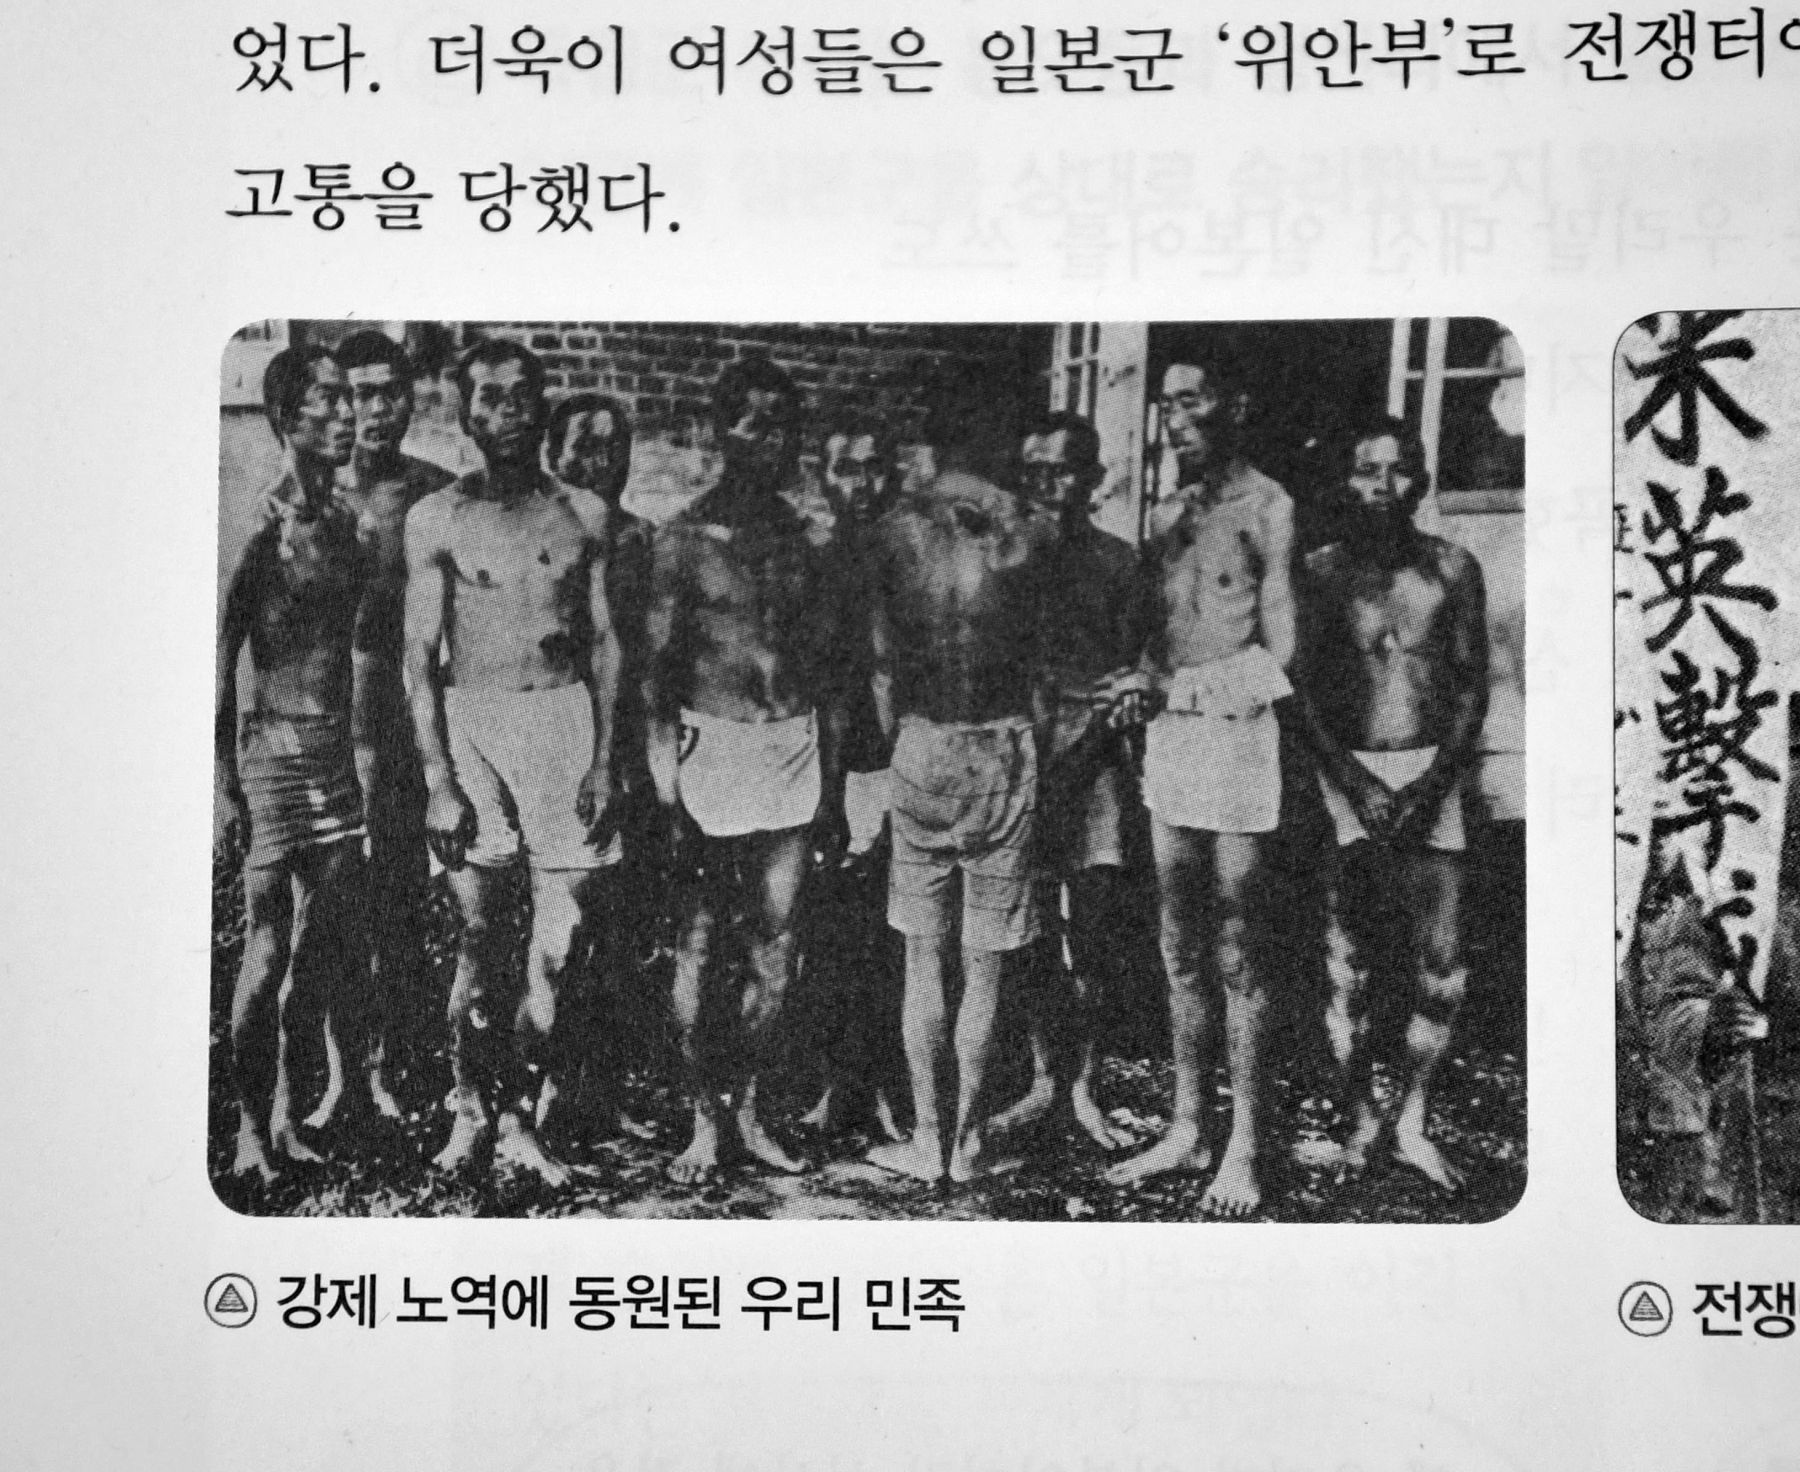 'Forced Labor' Photo by South Korean Media is Wrong 009